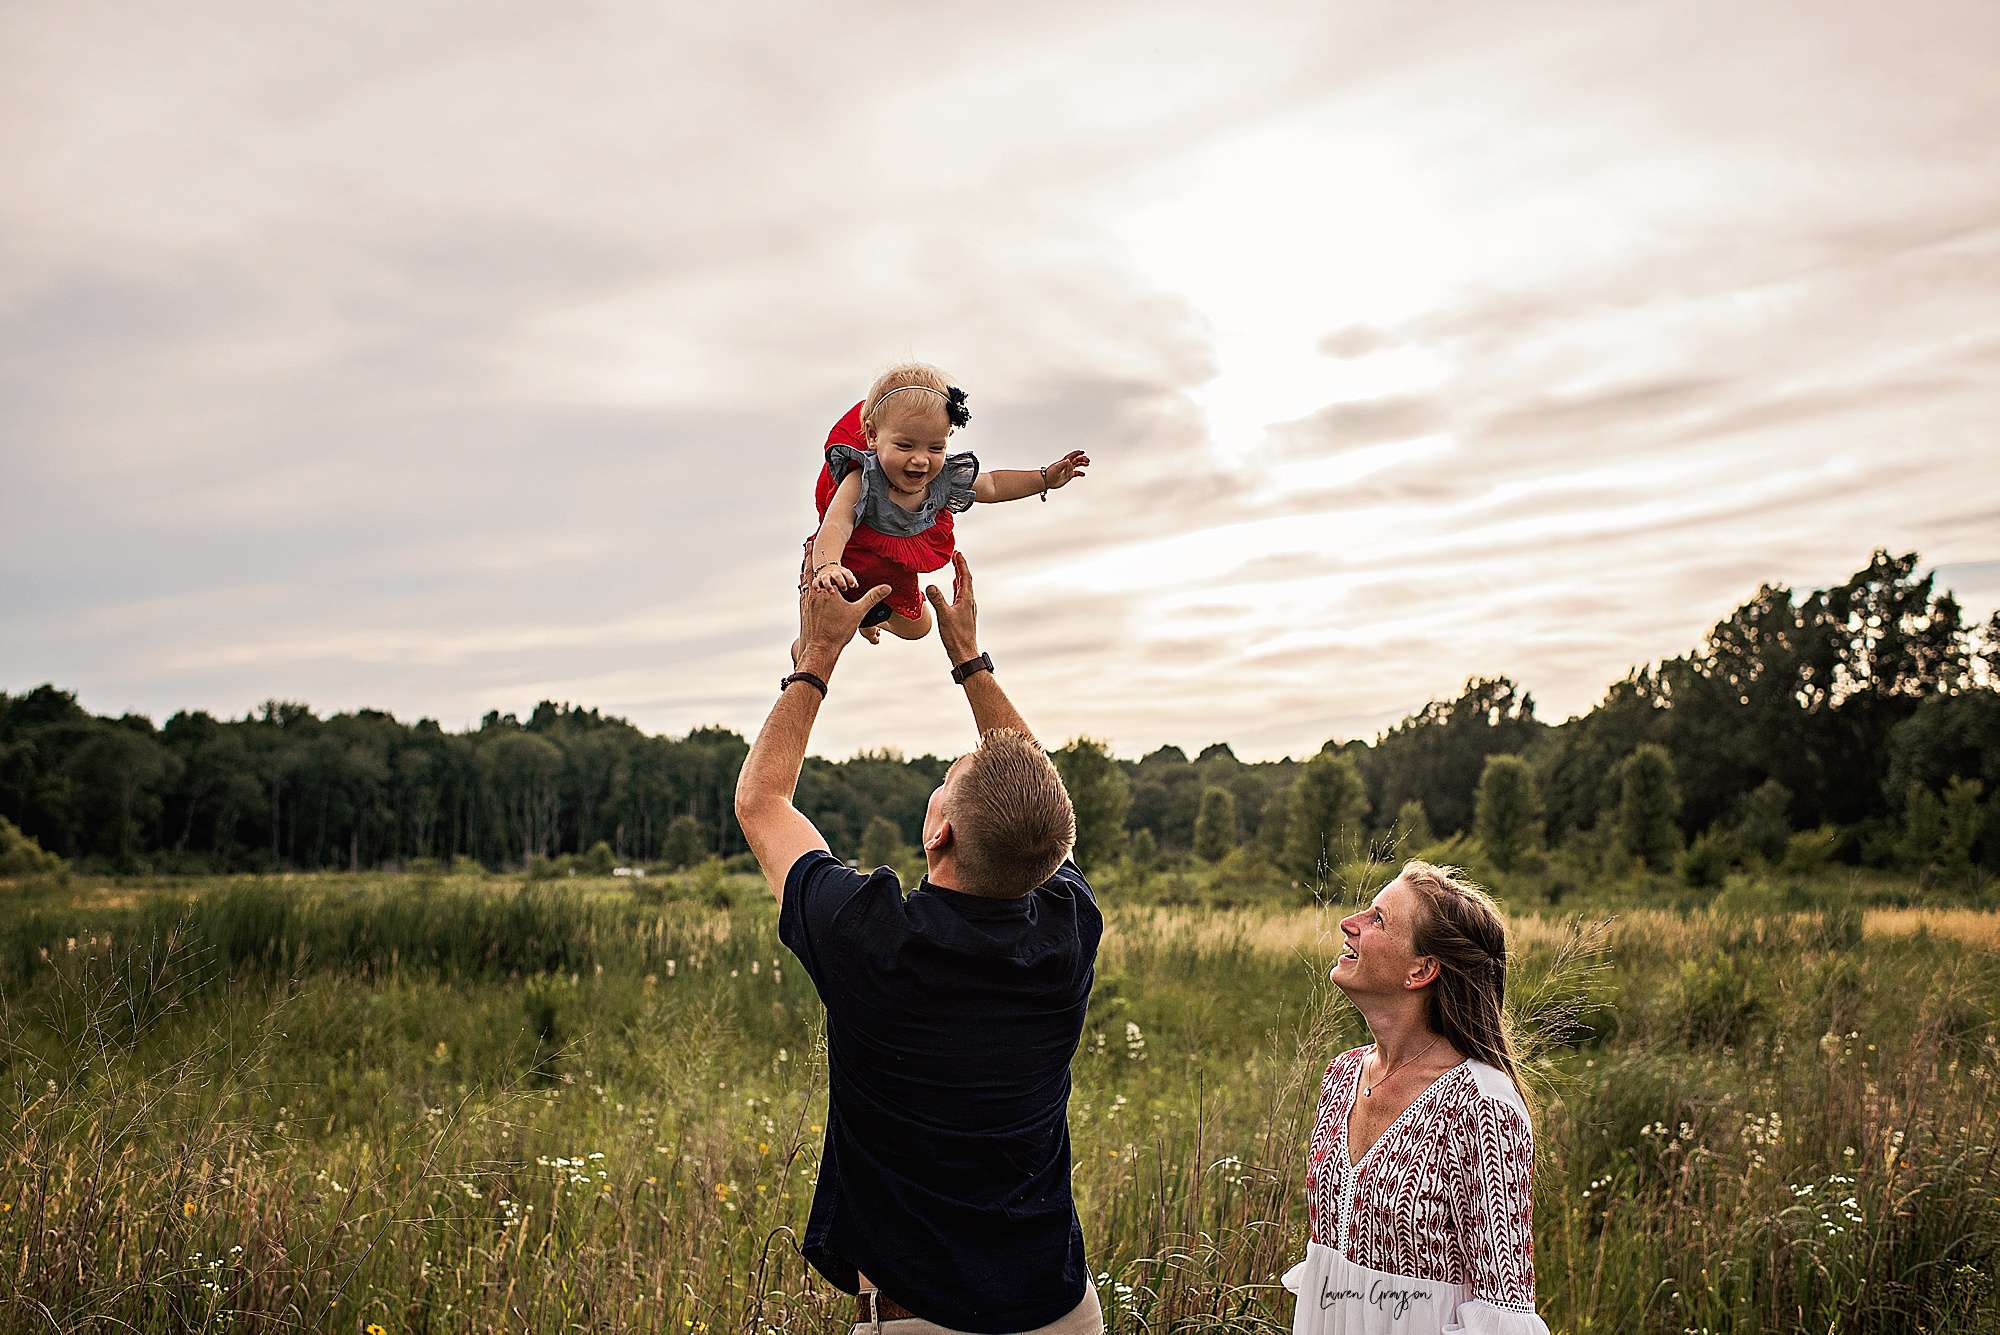 lauren-grayson-photography-akron-ohio-canton-family-photographer-lacey_0018.jpg